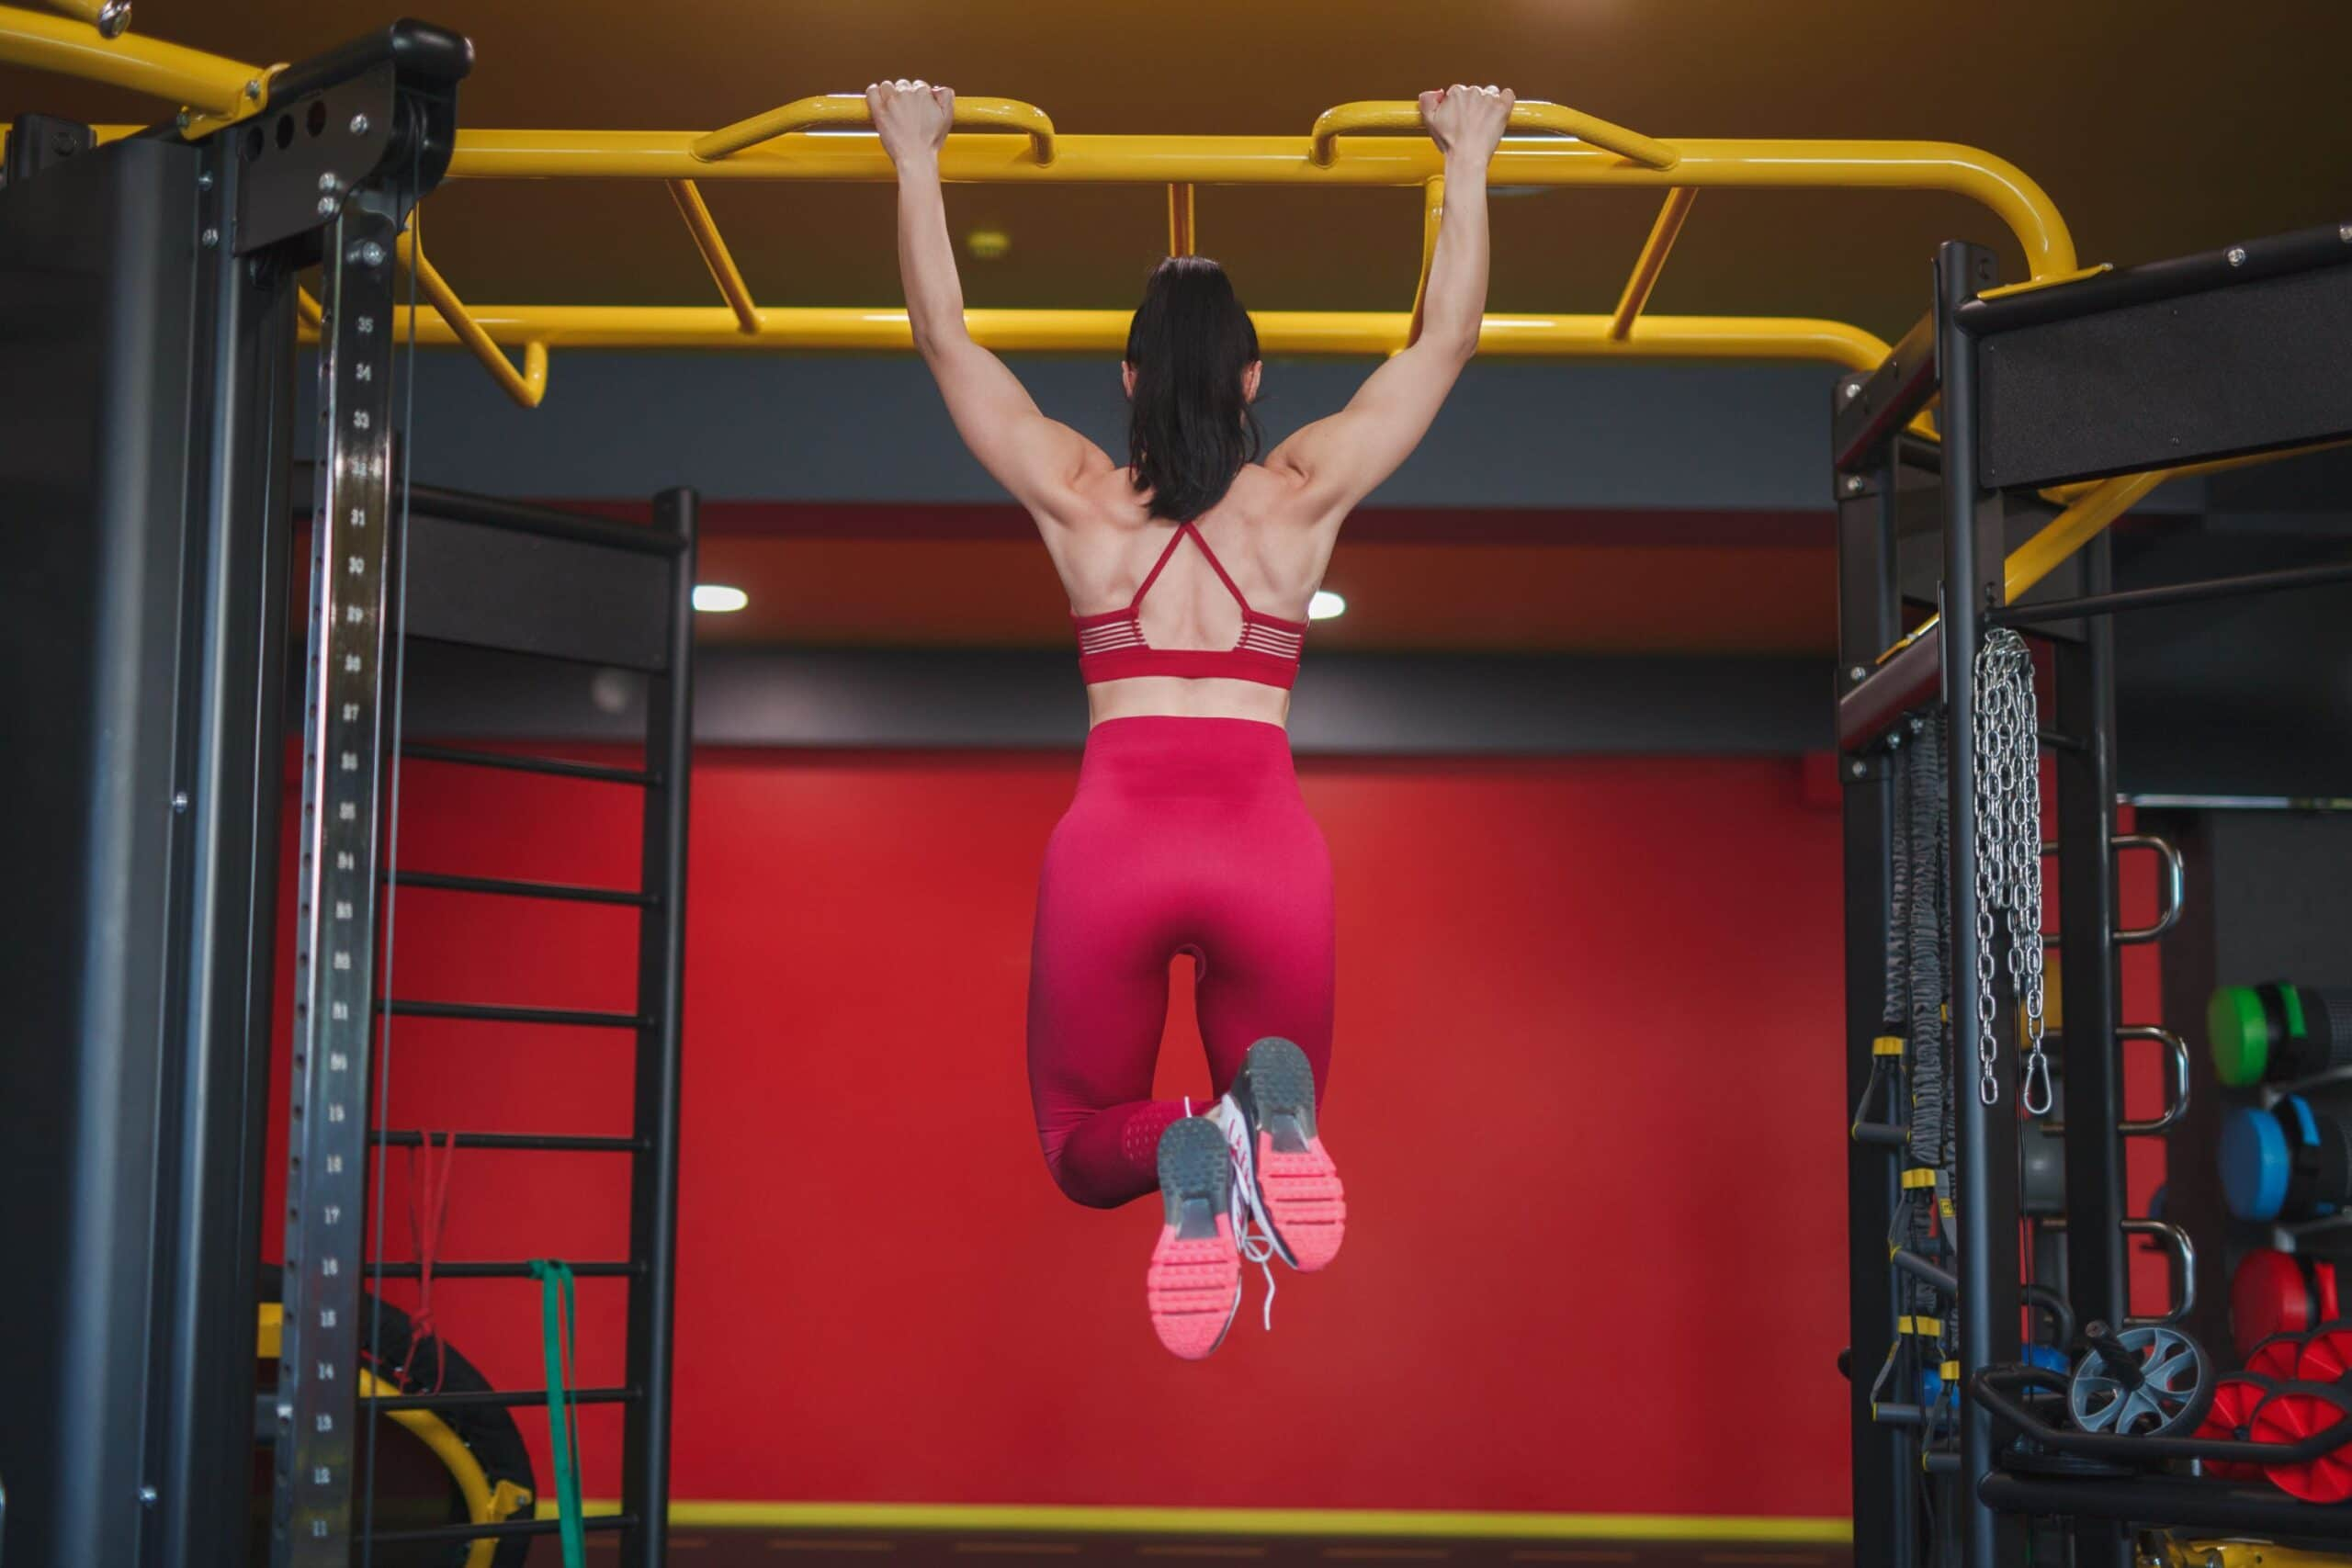 What Is A Functional Training Rig?